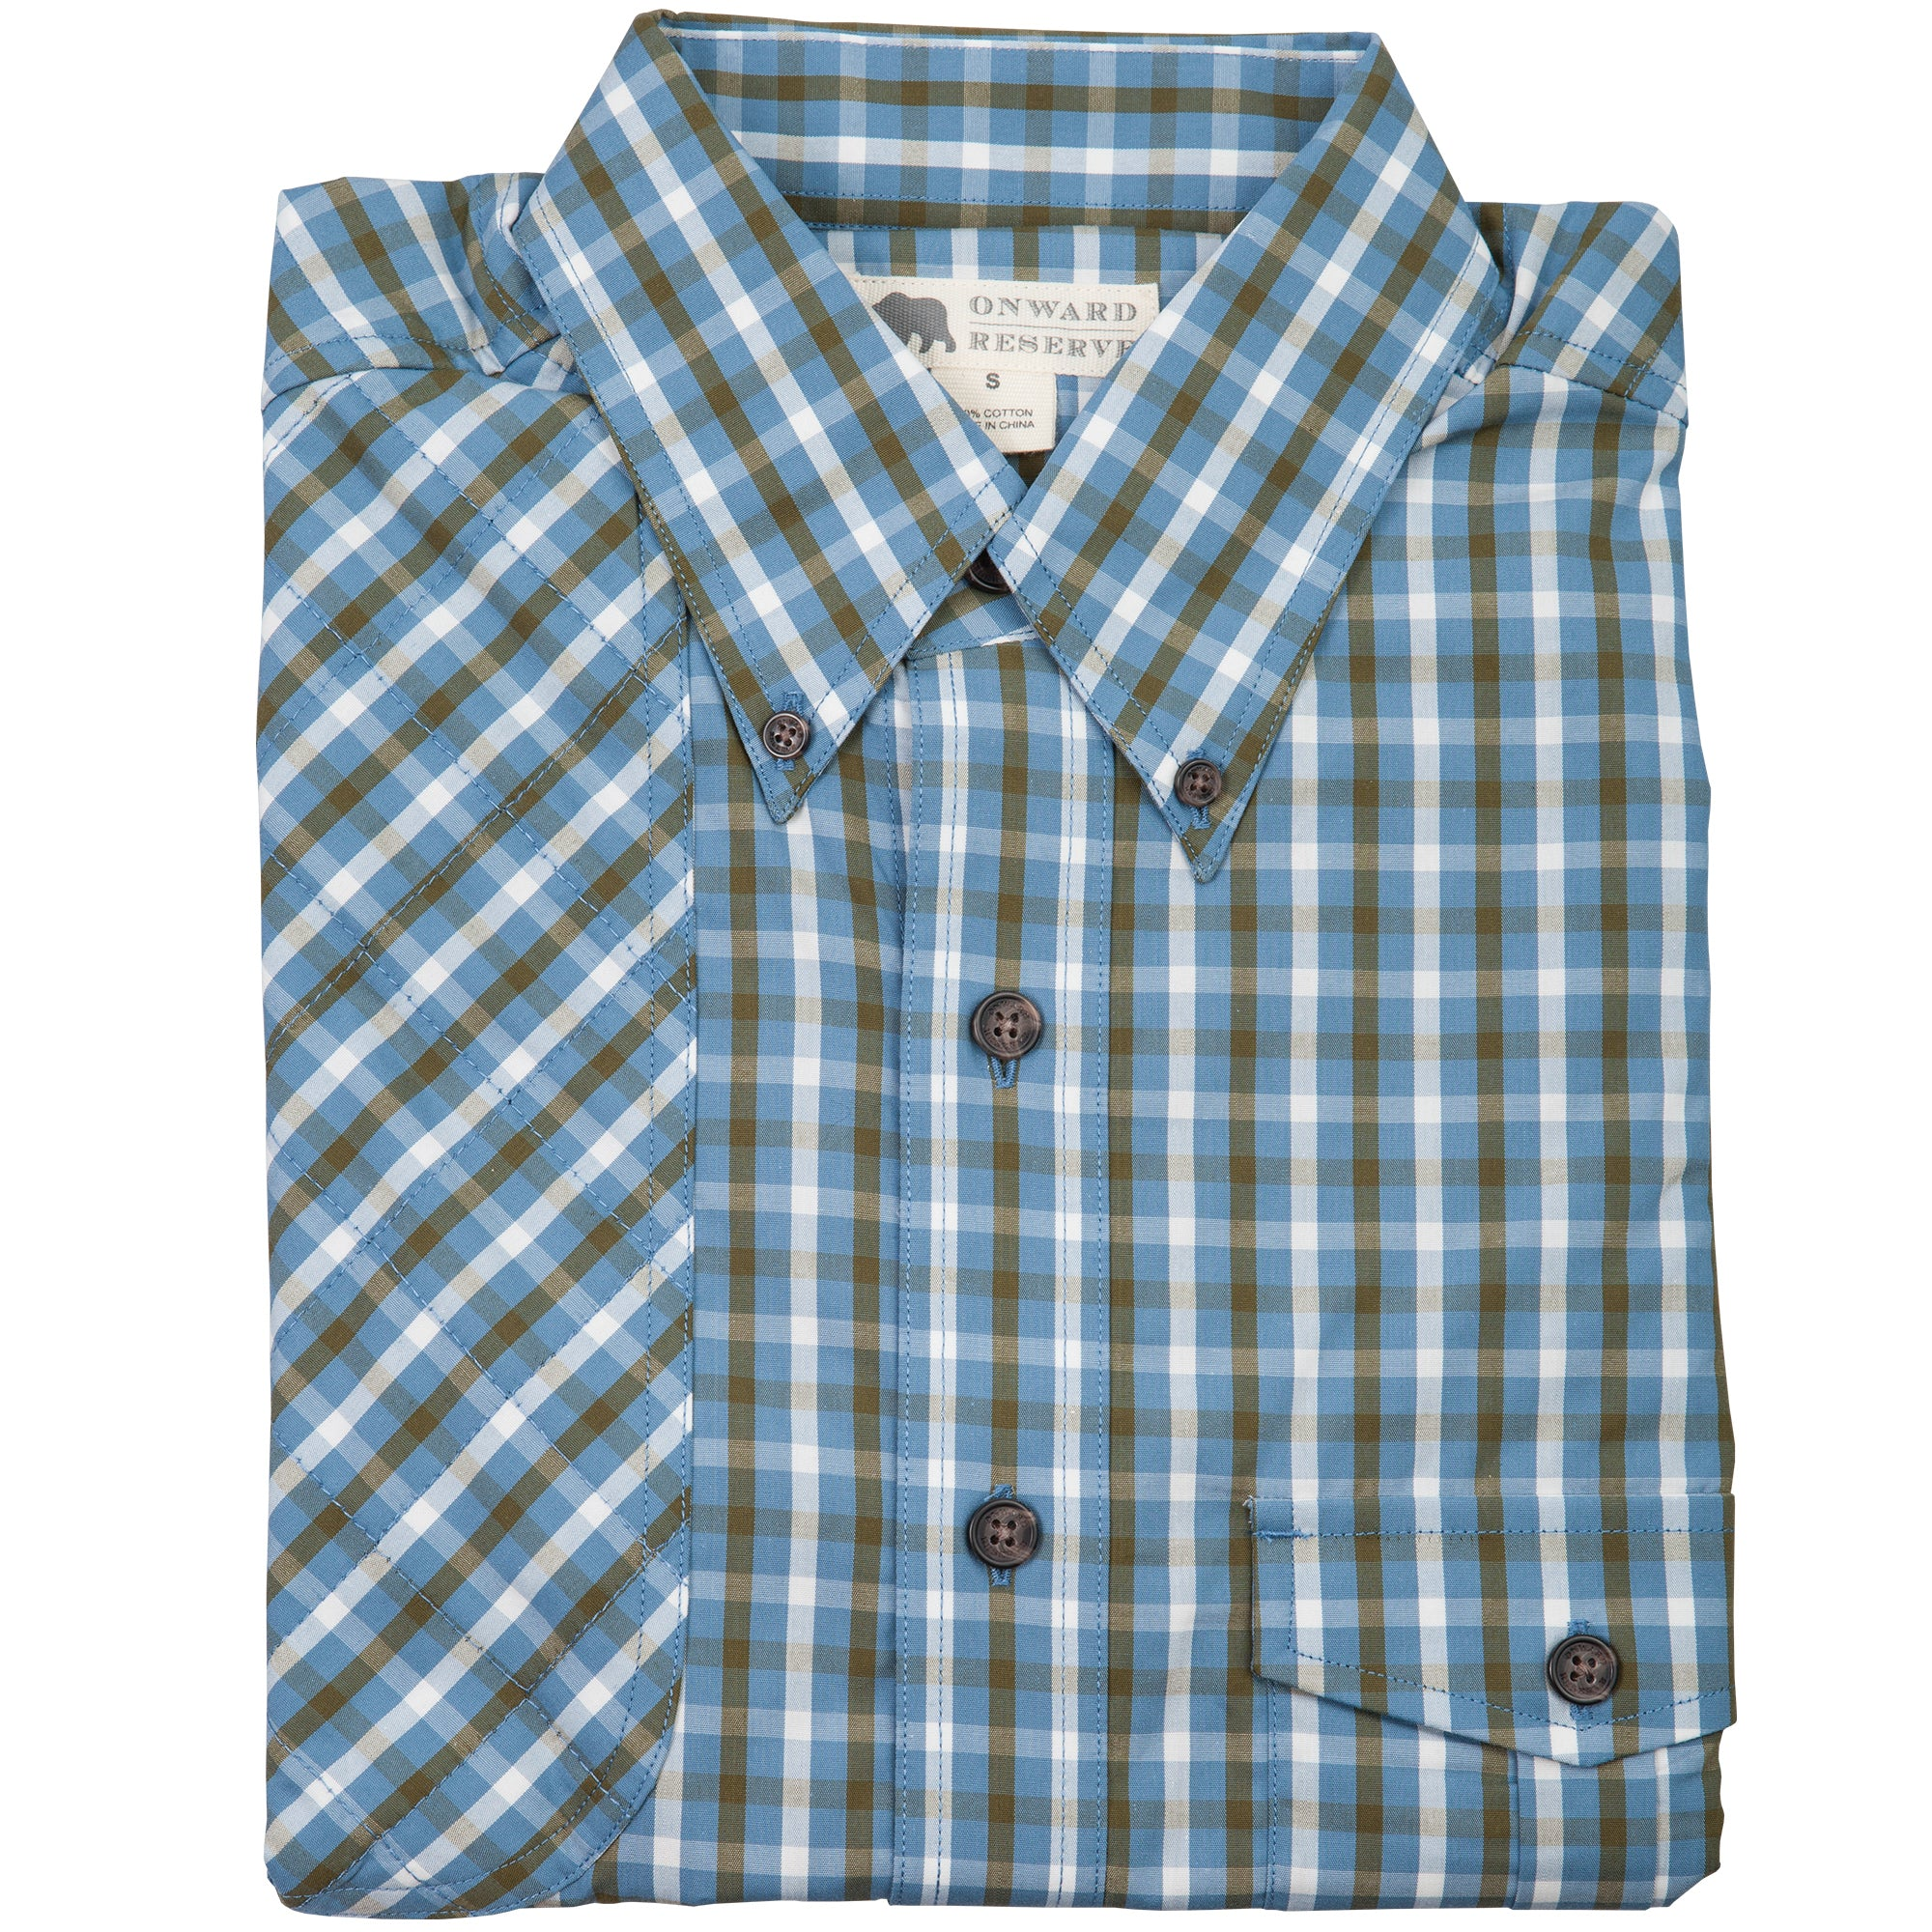 Red Hills Shooting Shirt in Blue Plaid - OnwardReserve